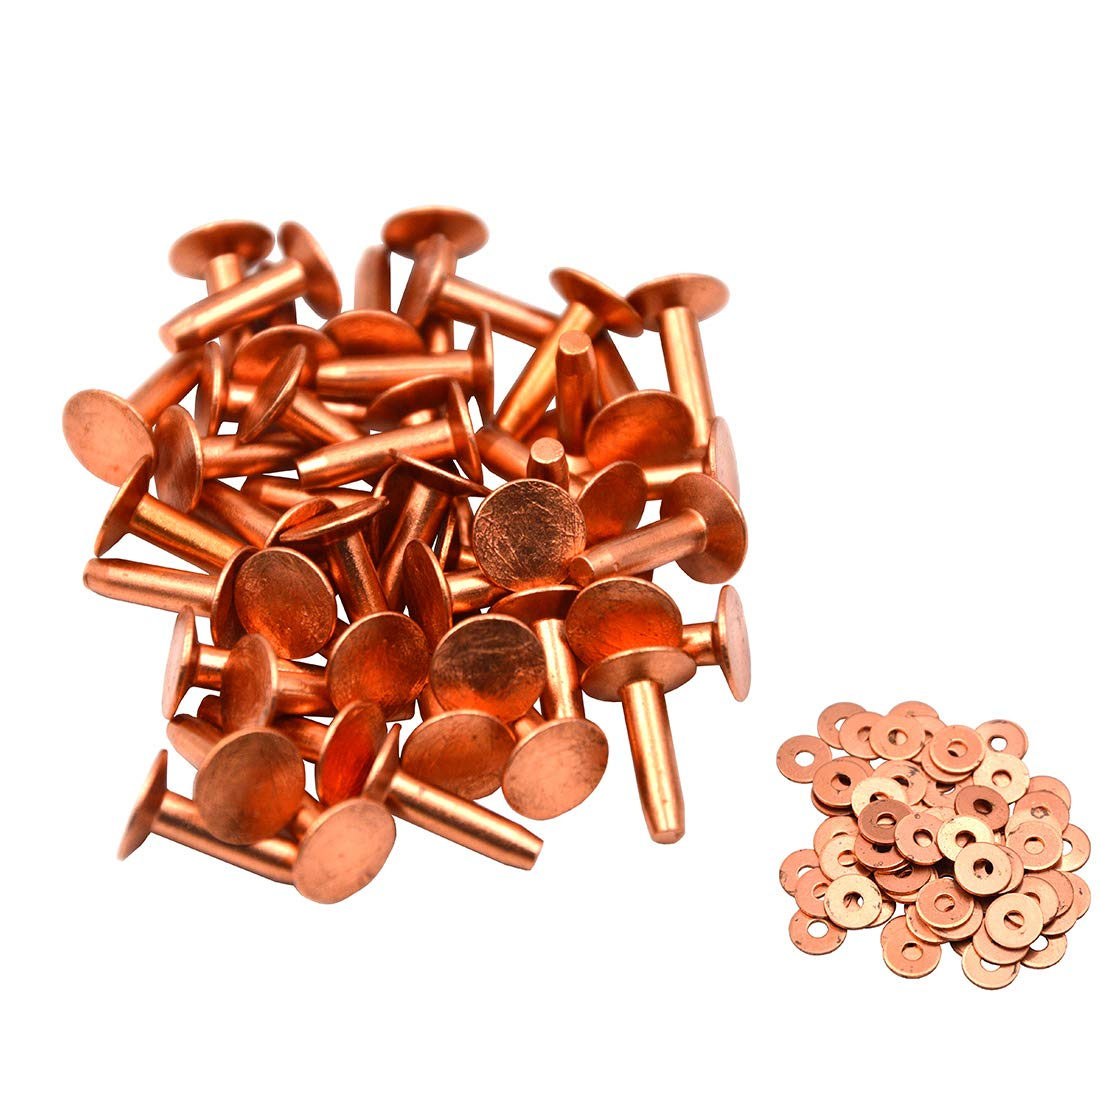 Okones Pack of 40,1//2Cap/×5//32Shaft/×4//5Tall,Solid Copper Rivets and Burrs Studs Spike for Leather Craft Belt Wallet 1//2Cap/×5//32Shaft/×4//5Tall, red Copper